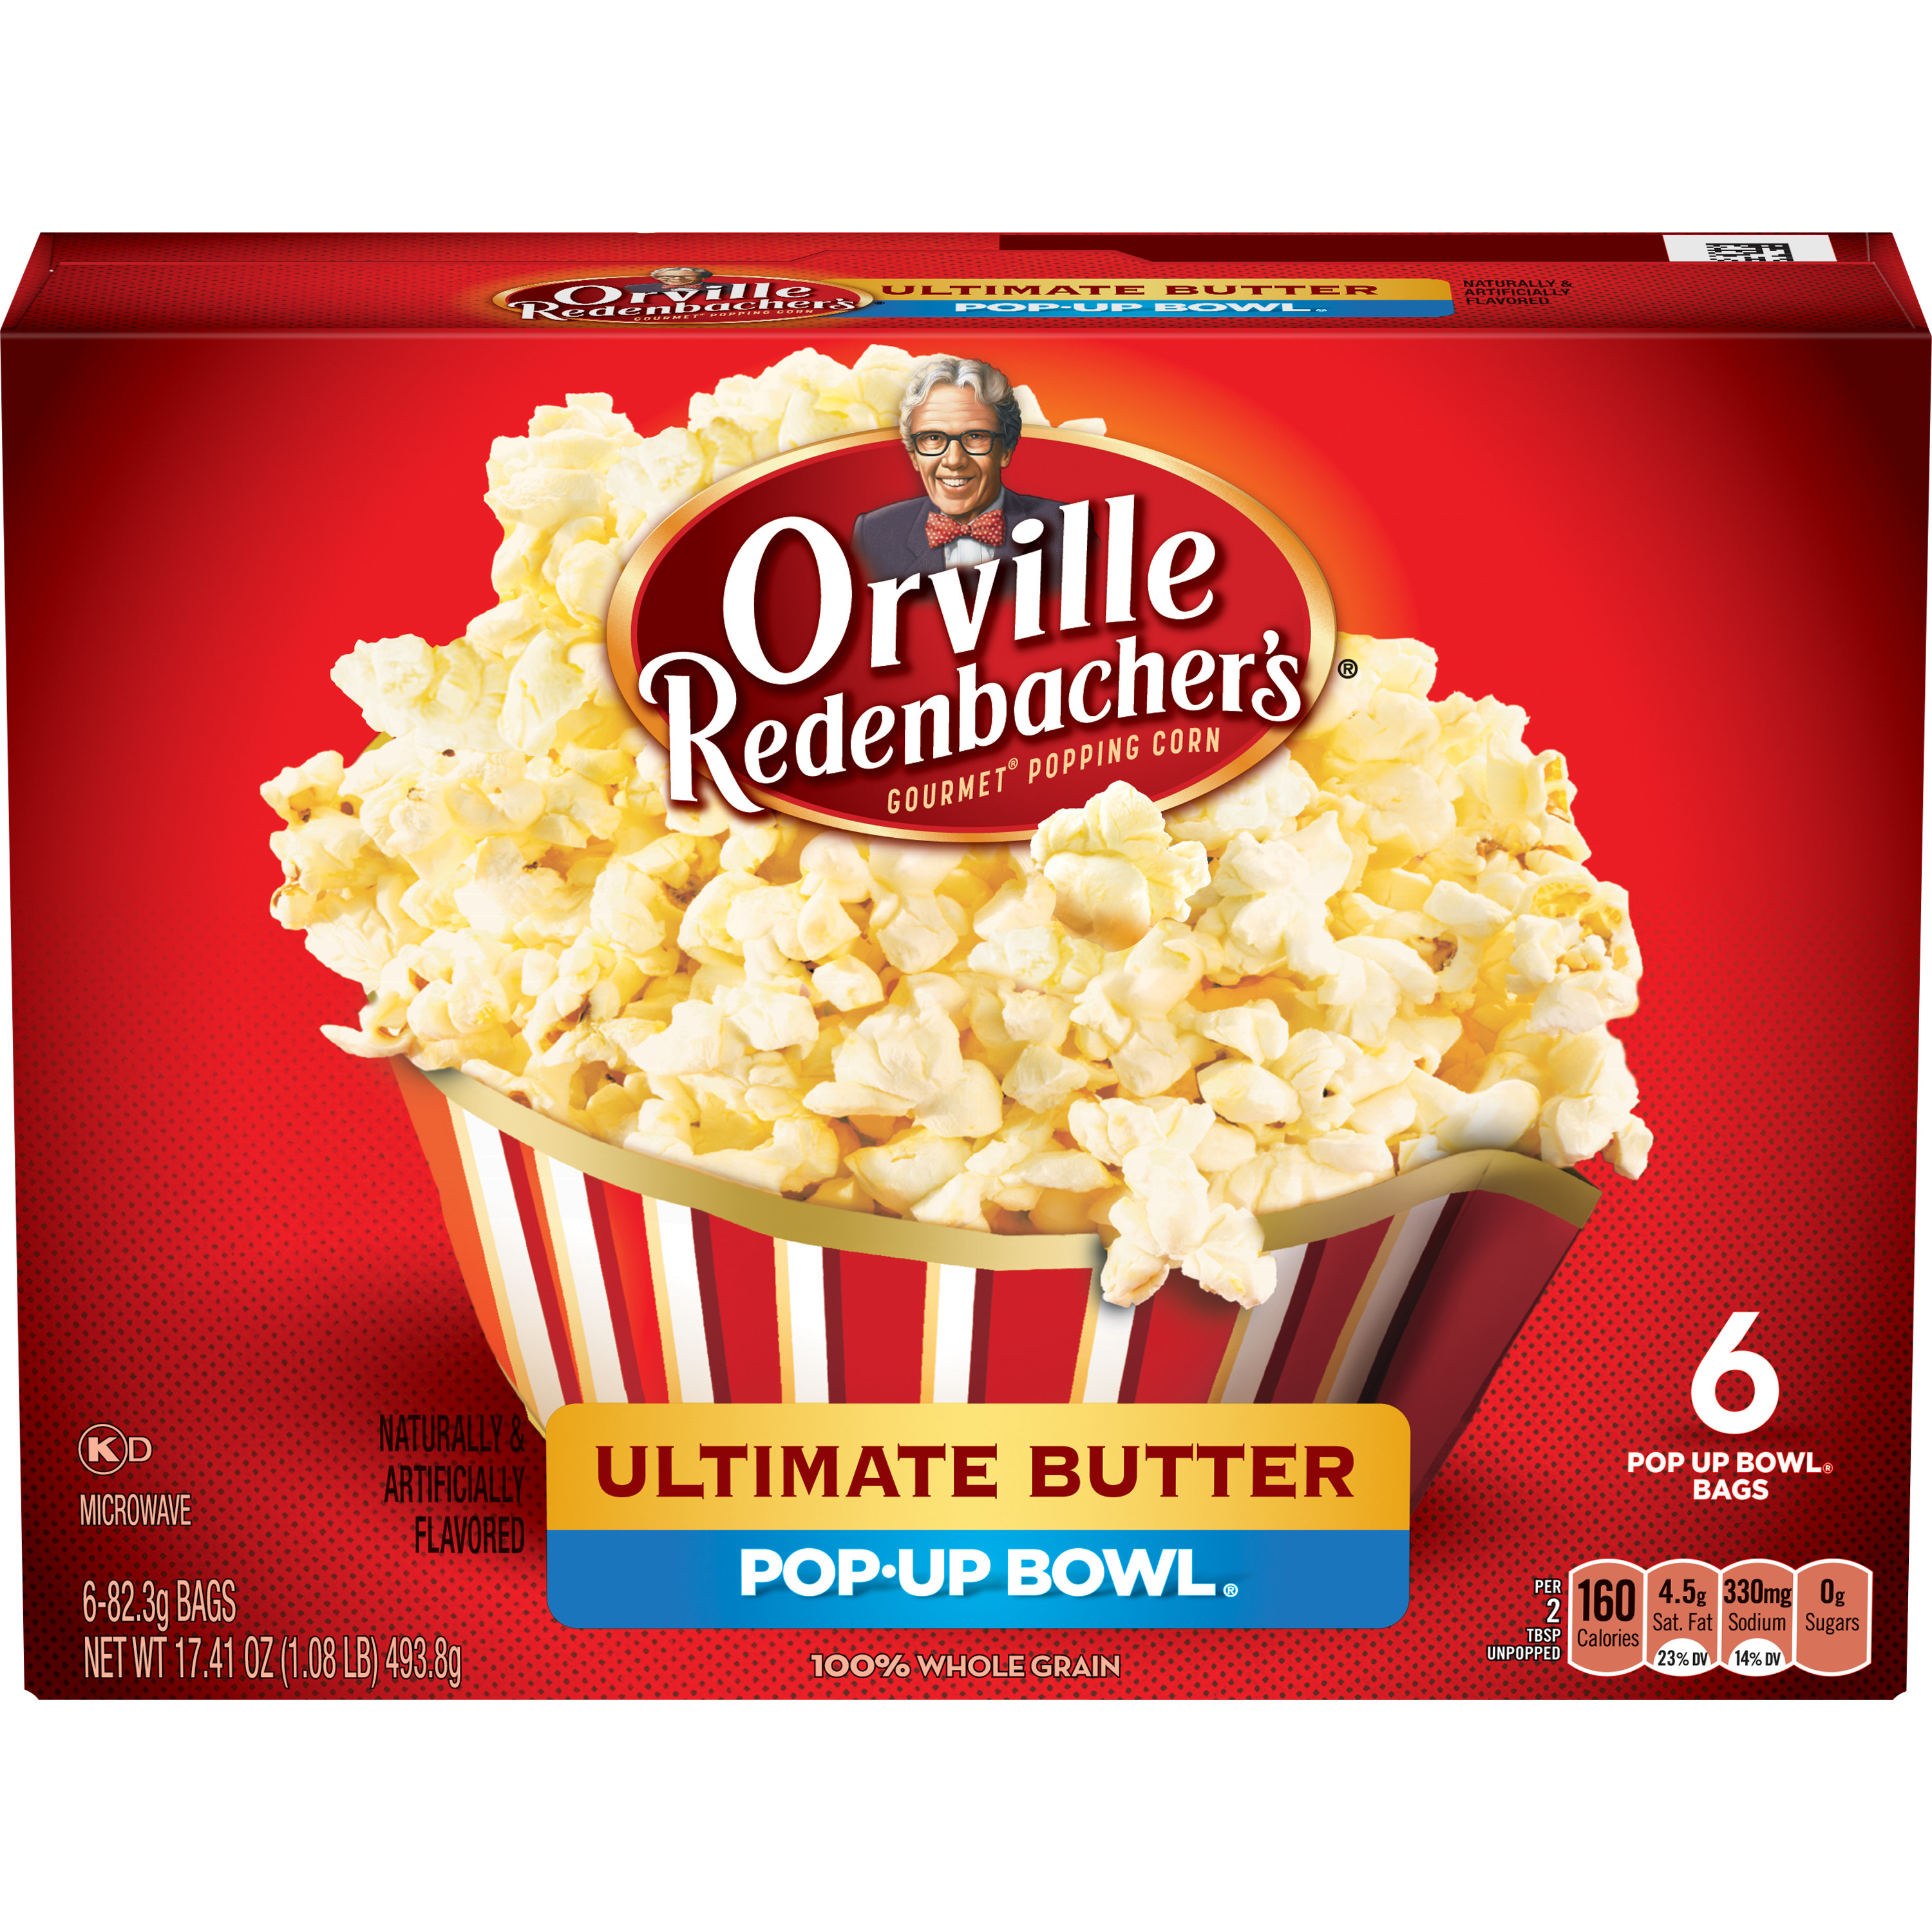 Orville Redenbacher's Ultimate Butter Microwave Popcorn, Pop Up Bowl, 6-Count